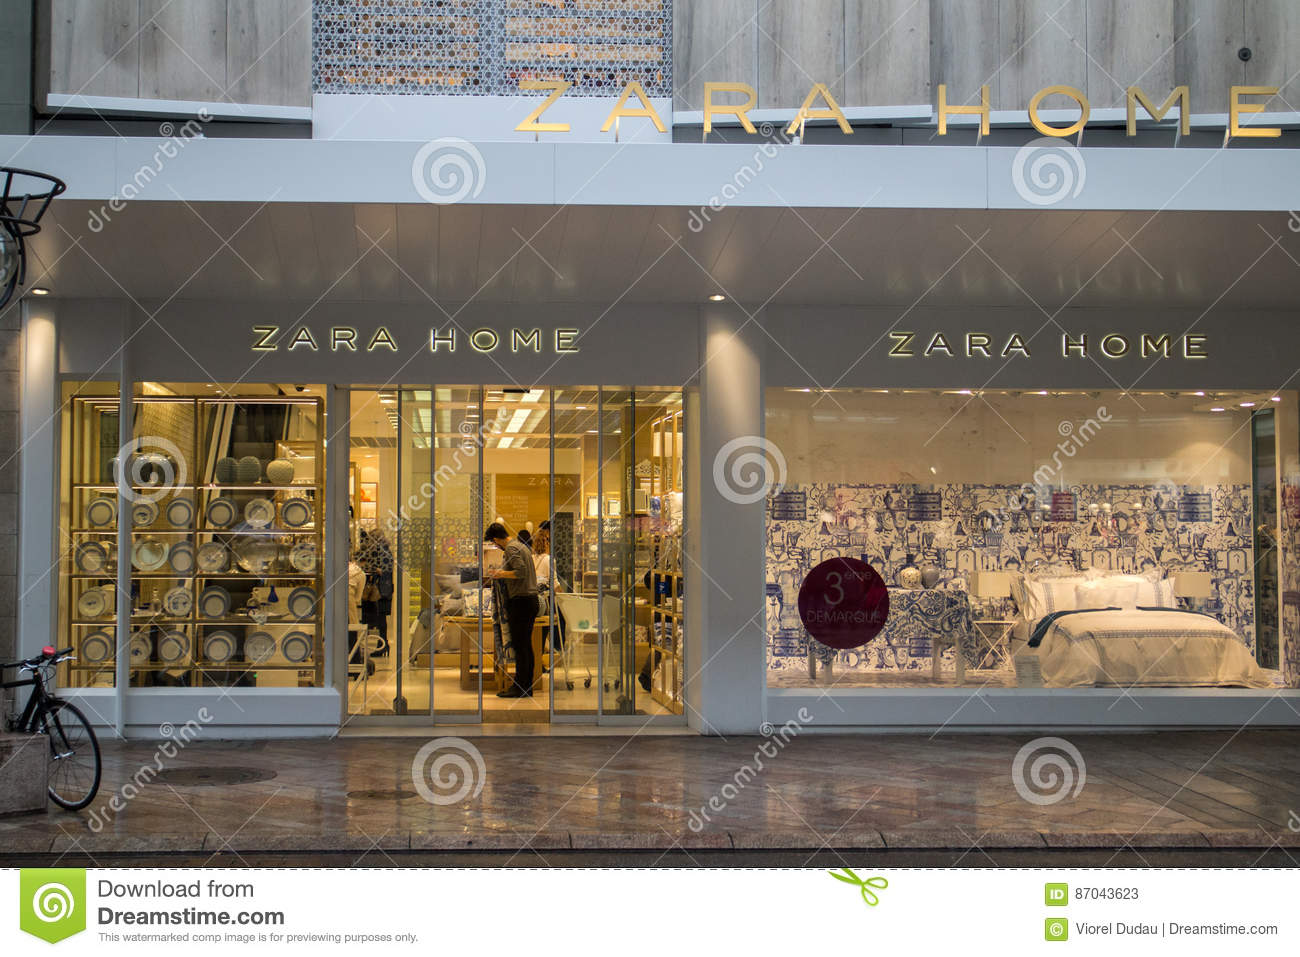 Zara Home shop editorial stock photo. Image of store - 87043623 df6f387967